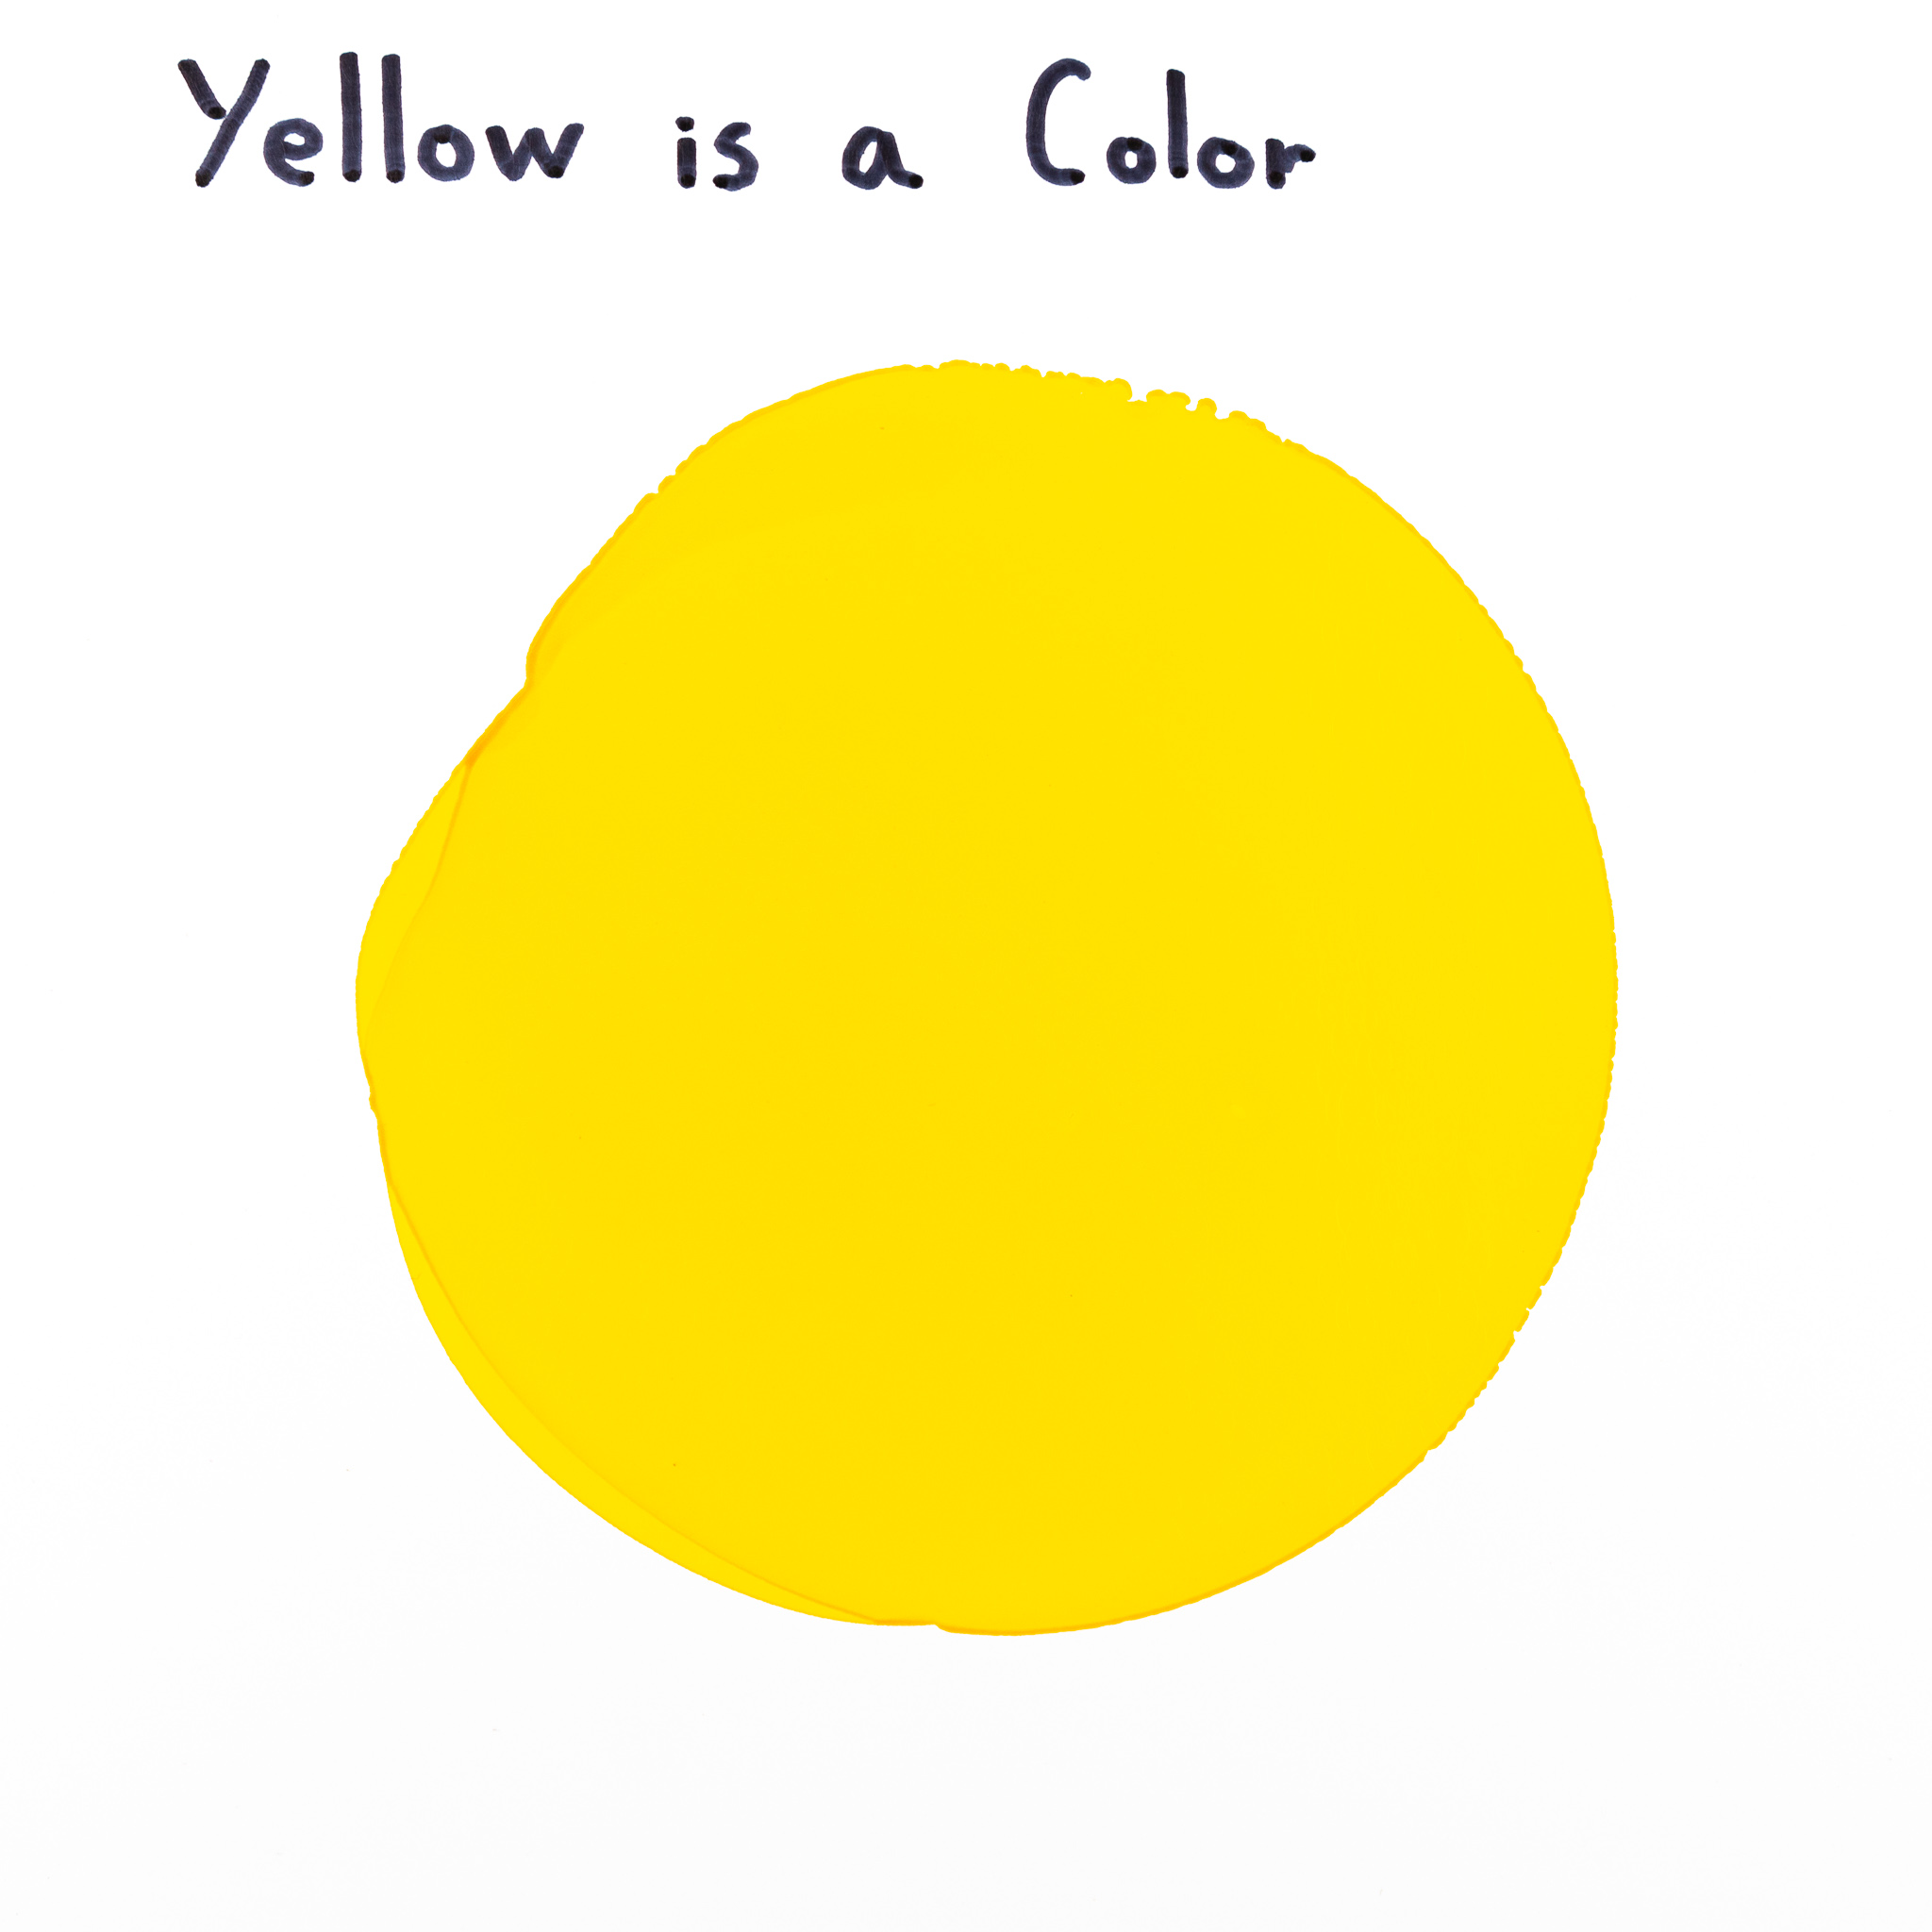 Yellow is a Color.